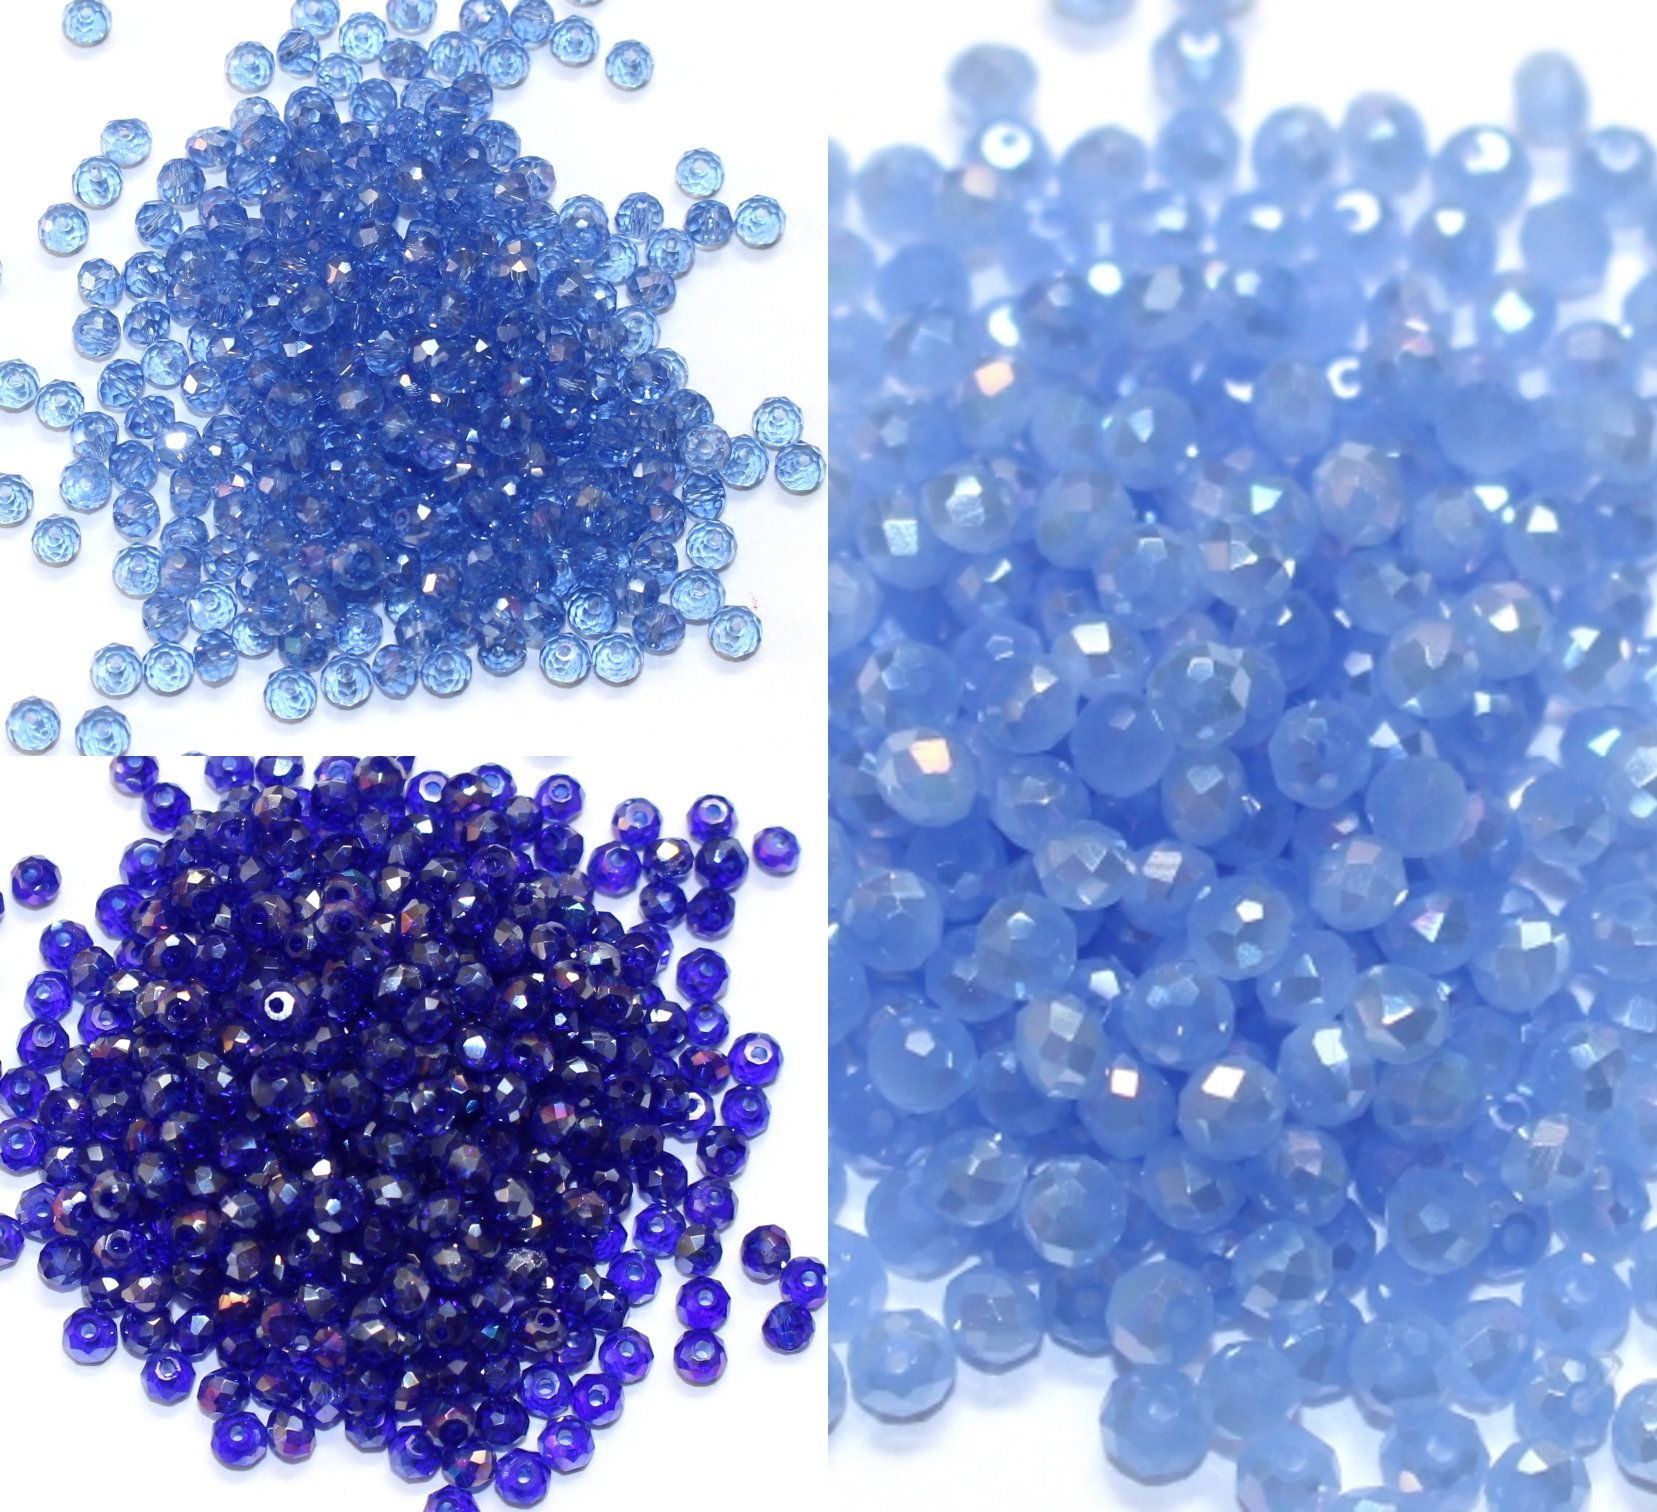 6d4ebf44d Bulk 3x2mm Crystal Rondelle Beads-Sapphire Jade-Deep Sapphire-Light  Sapphire-20, 50 or 100 pieces-Supplies |AC-R3-AB-002-140-006 by  AndreasTreasureTrove on ...